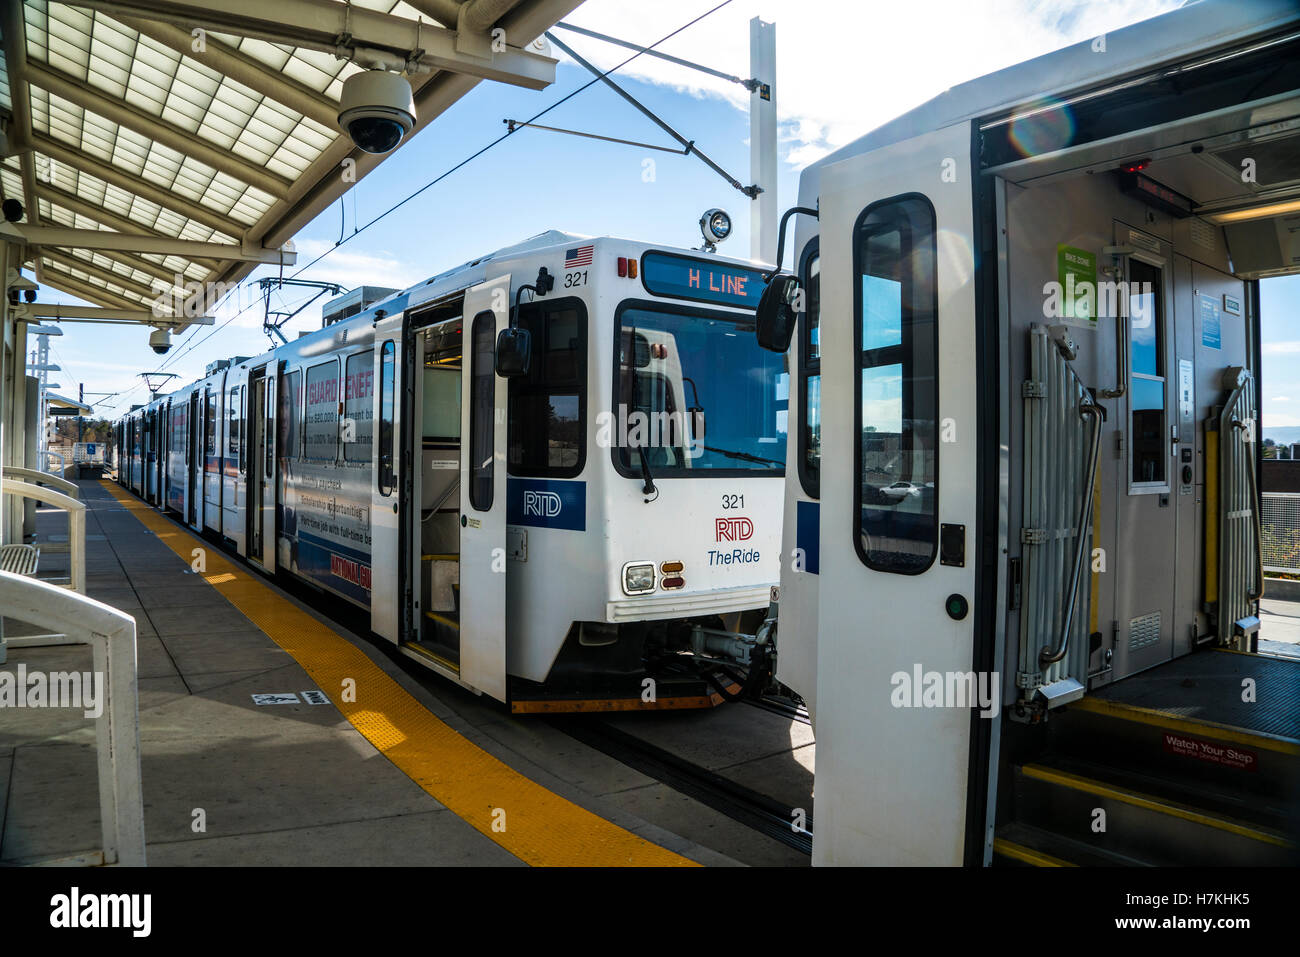 Denver area Regional Transportation District RTD light rail train at Yale station with open doors - Stock Image